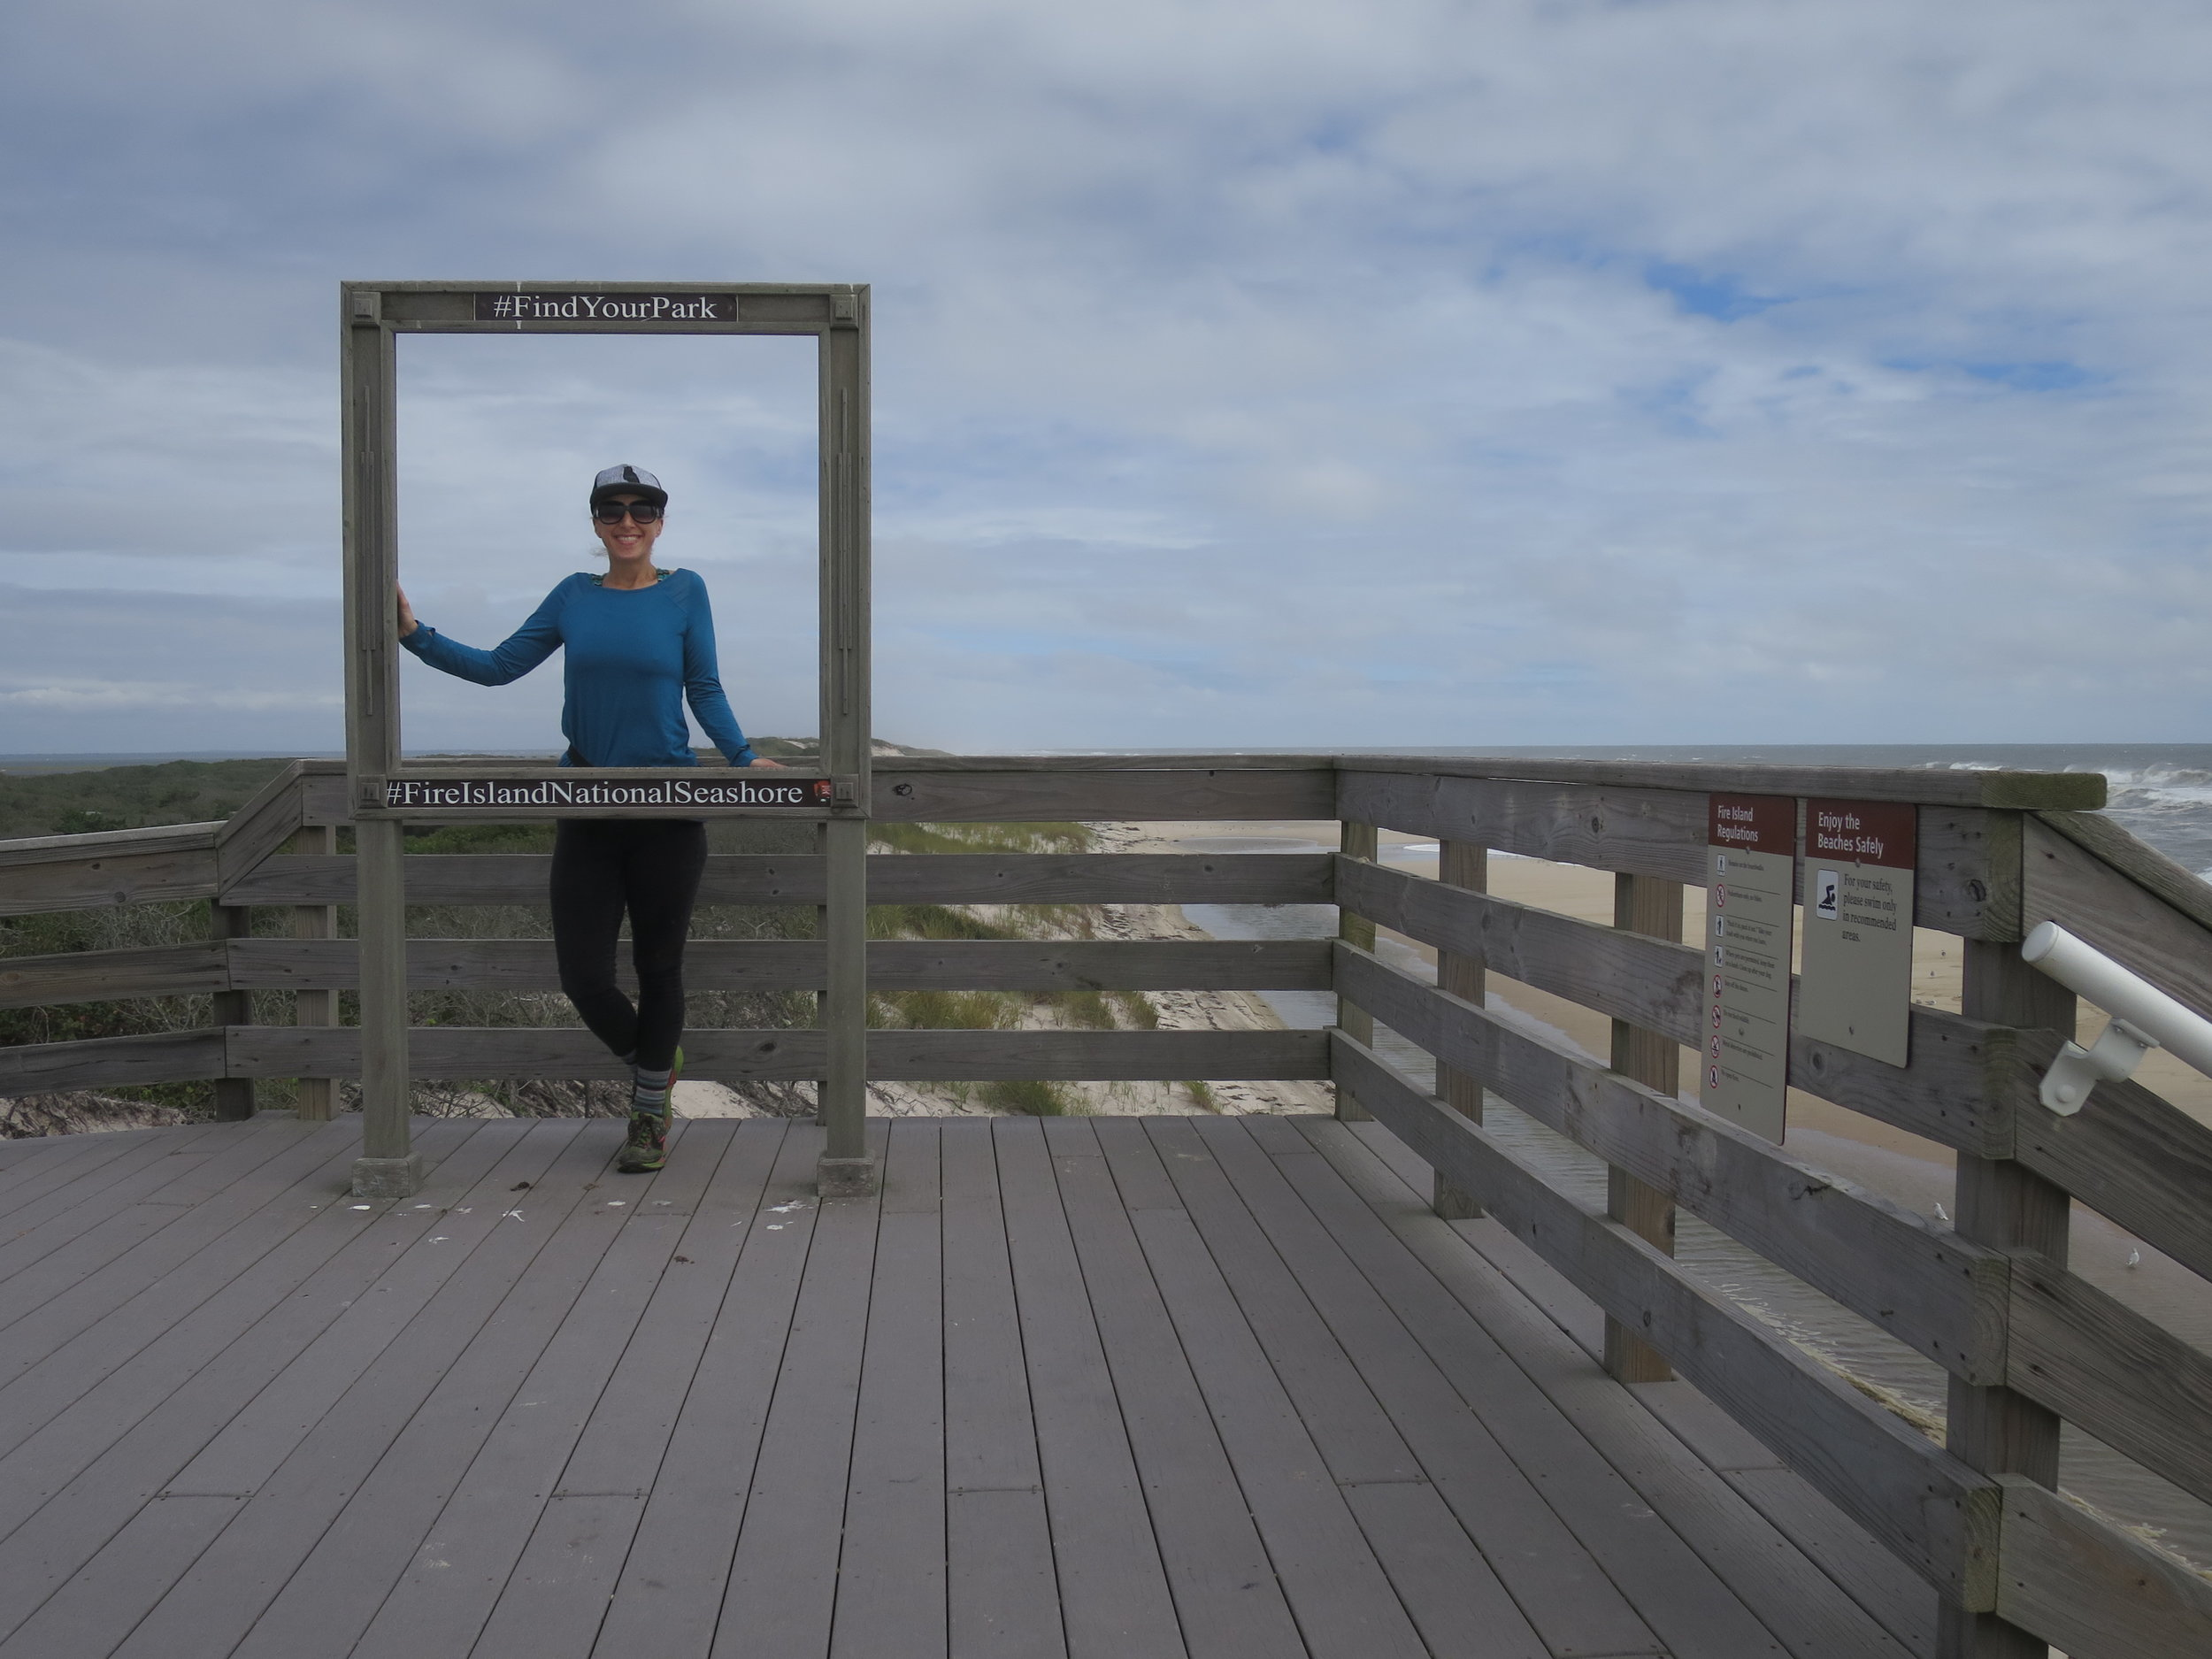 #findyourpark  Me standing near the Watch Hill Campground on Fire Island